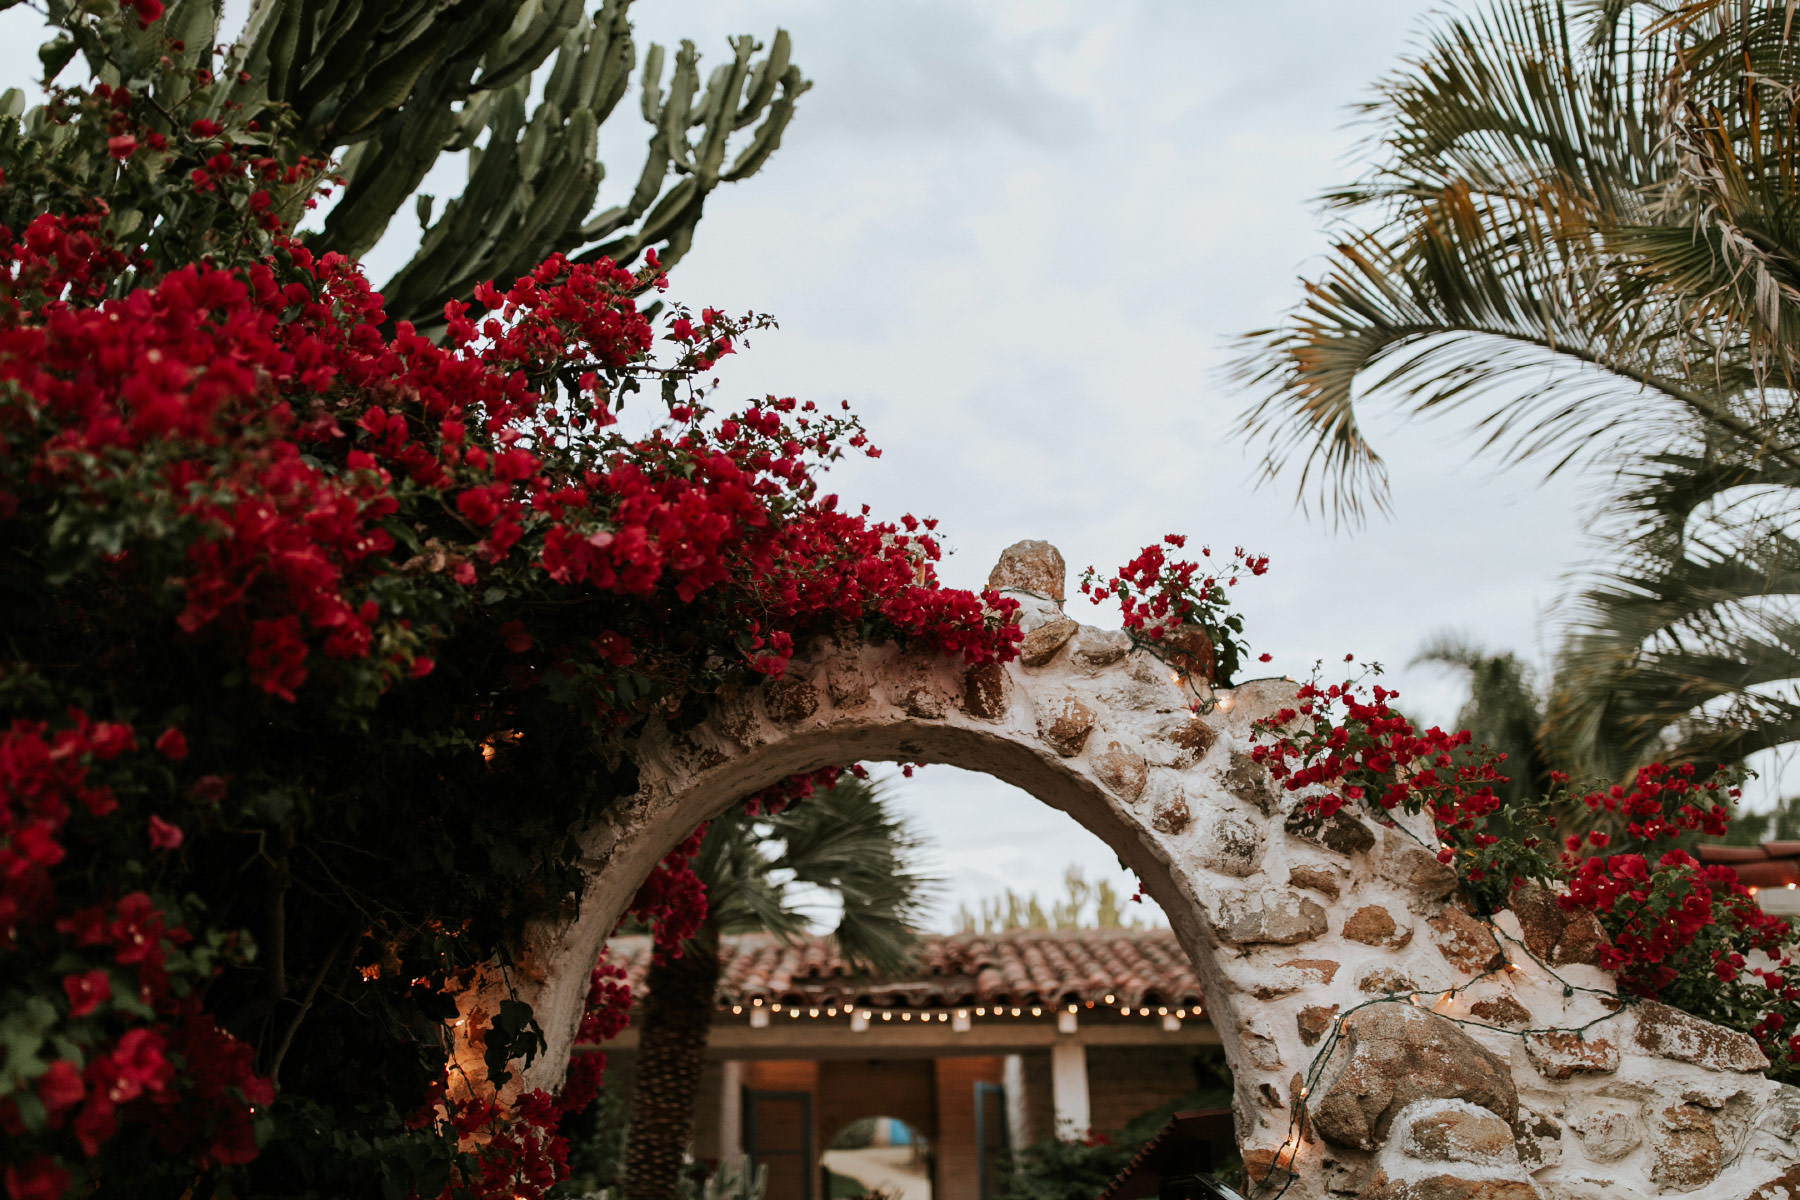 Bougainvillea growing over an archway at Leo Carrillo Ranch